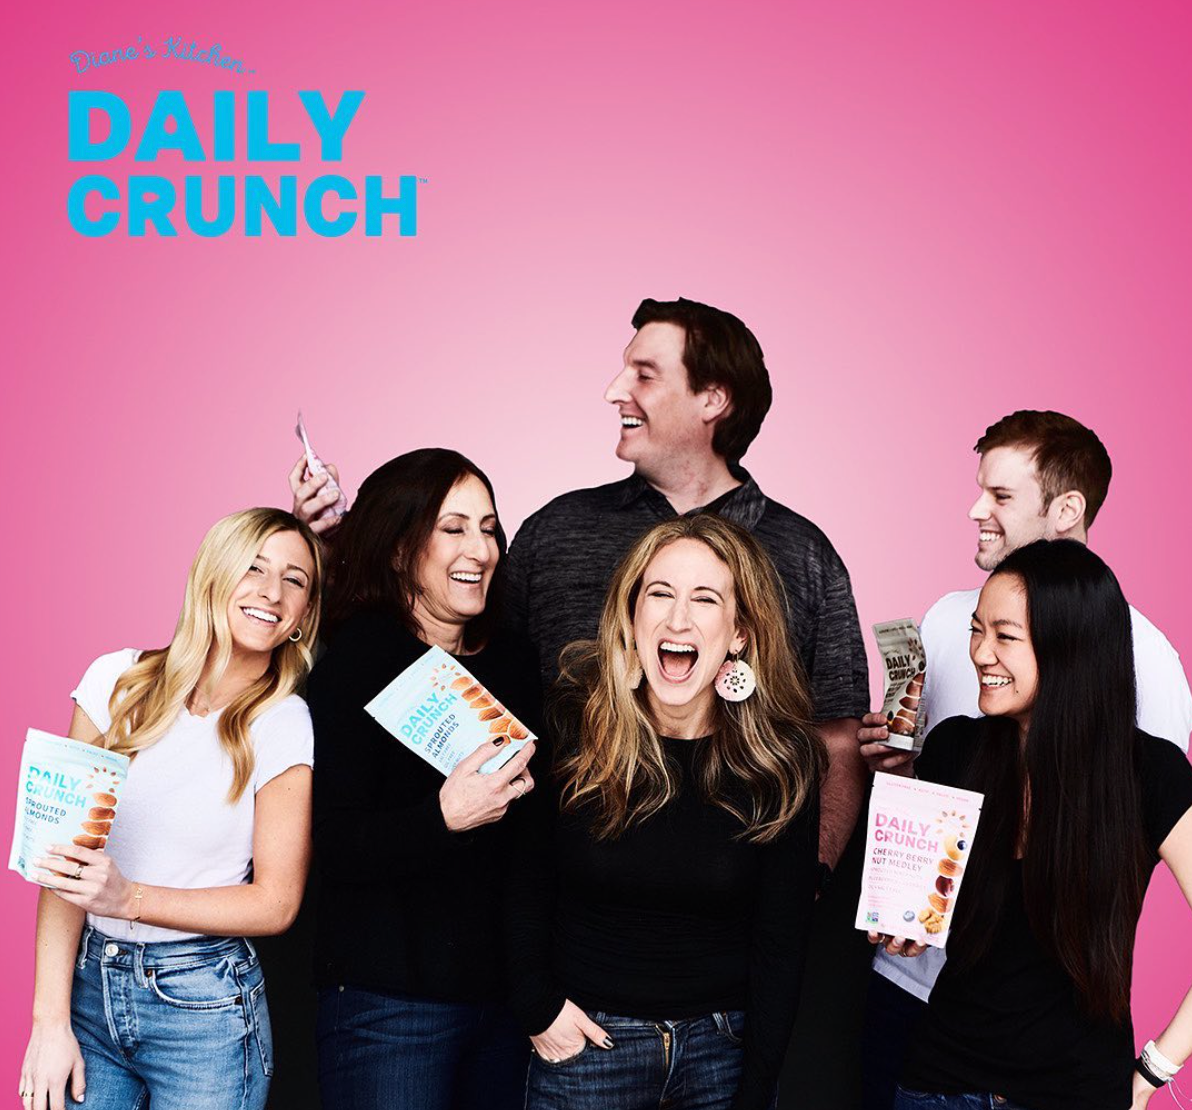 The Daily Crunch Affect